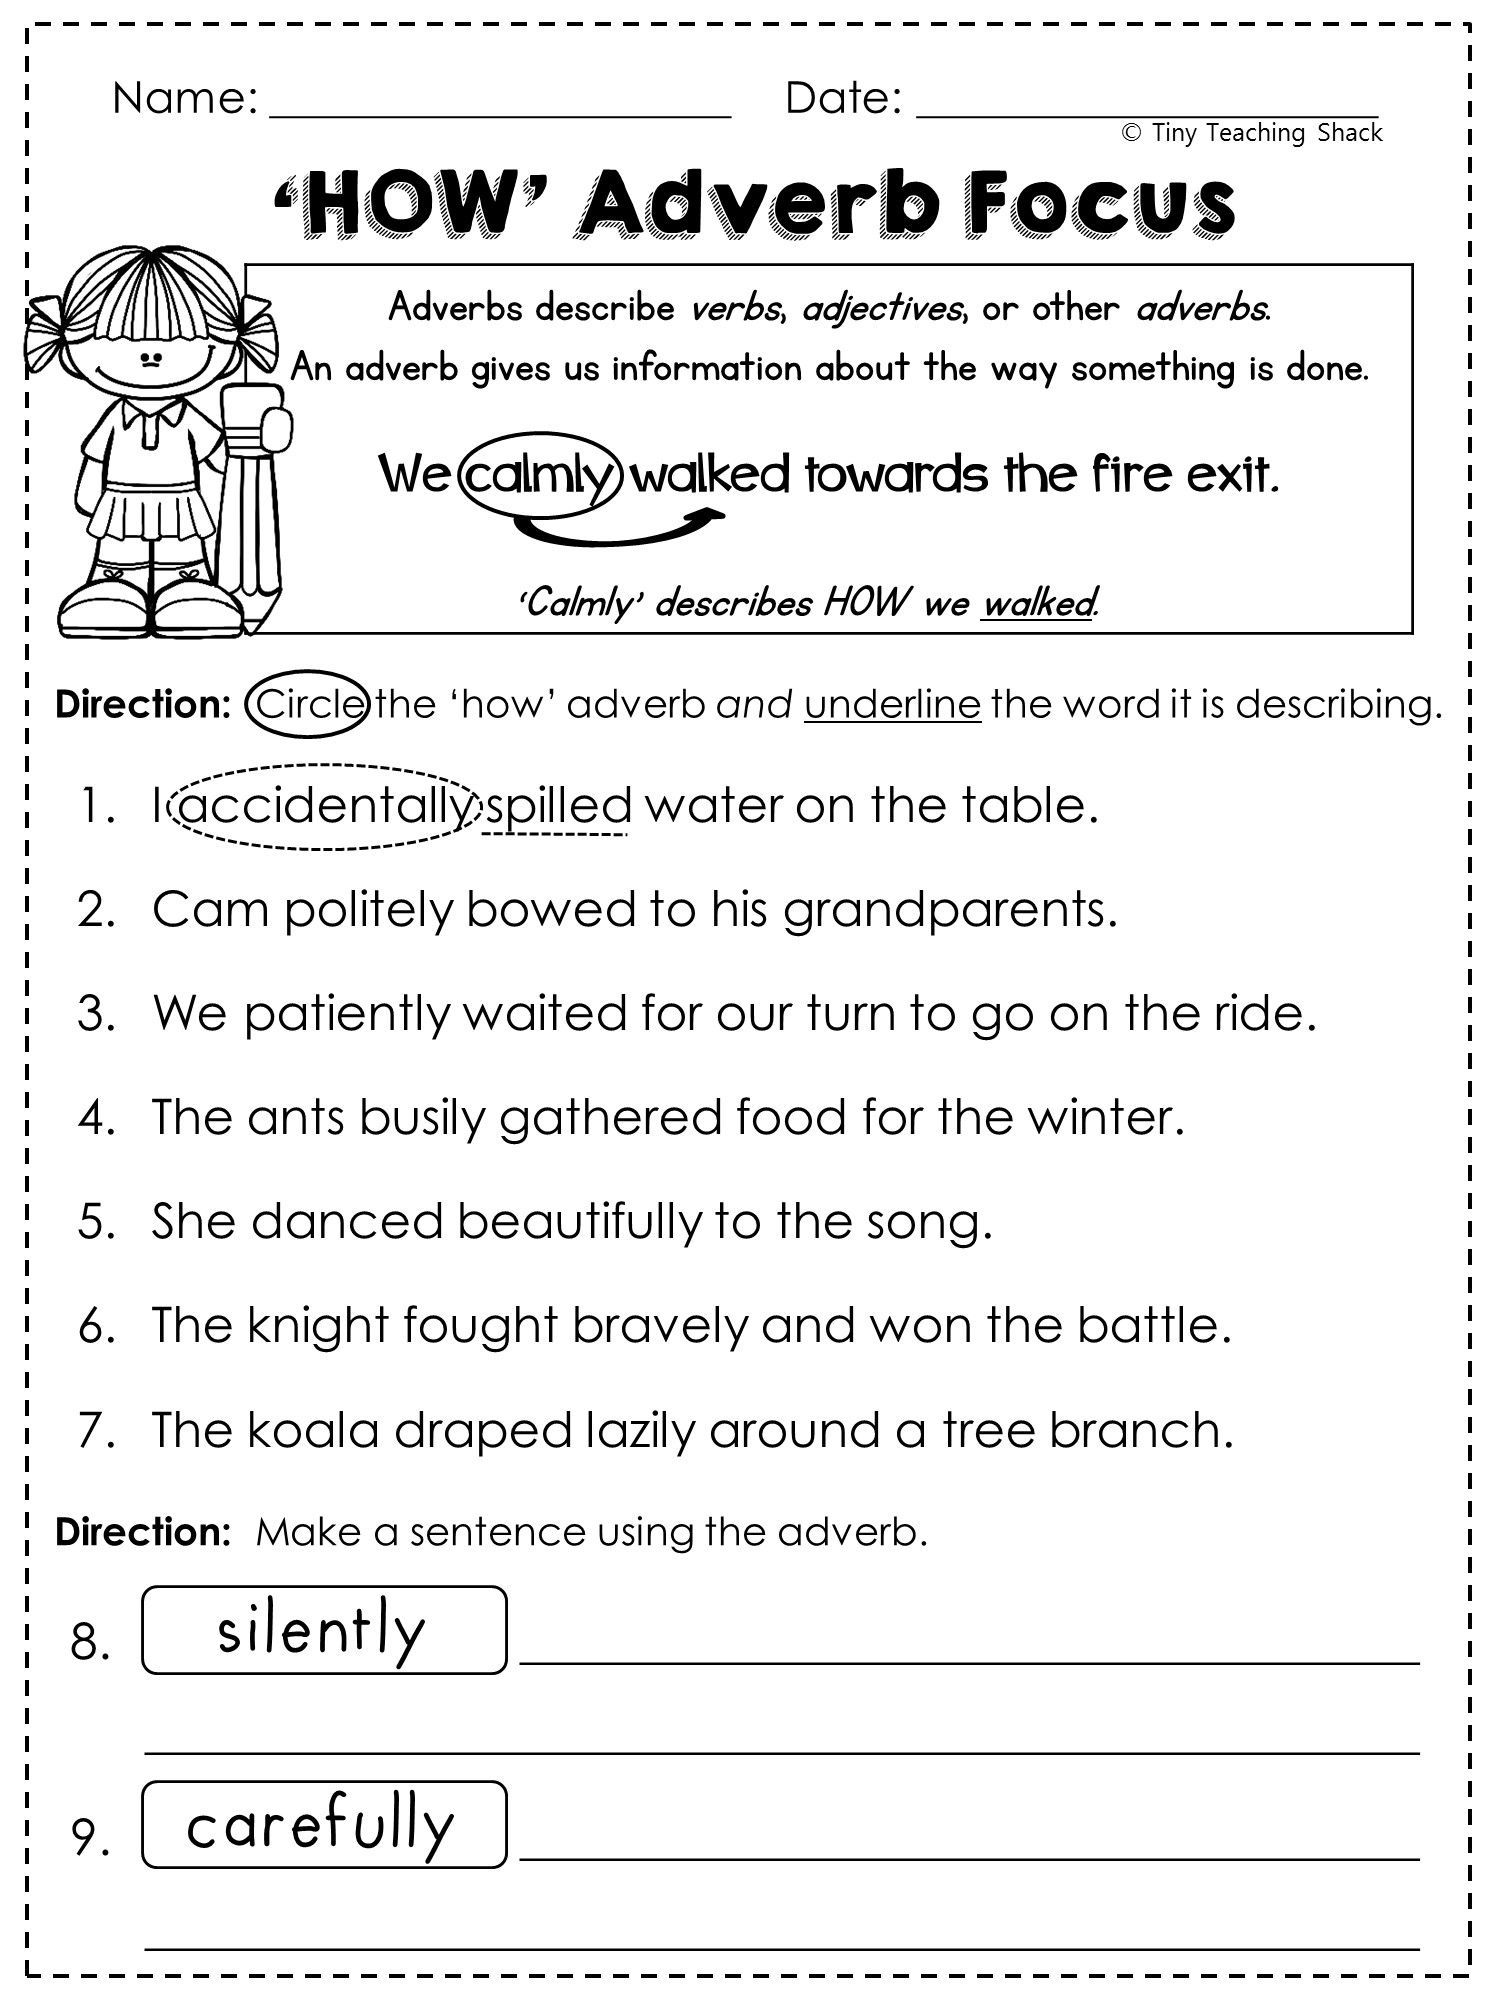 23 Best 2nd Grade Worksheets Images On Best Worksheets